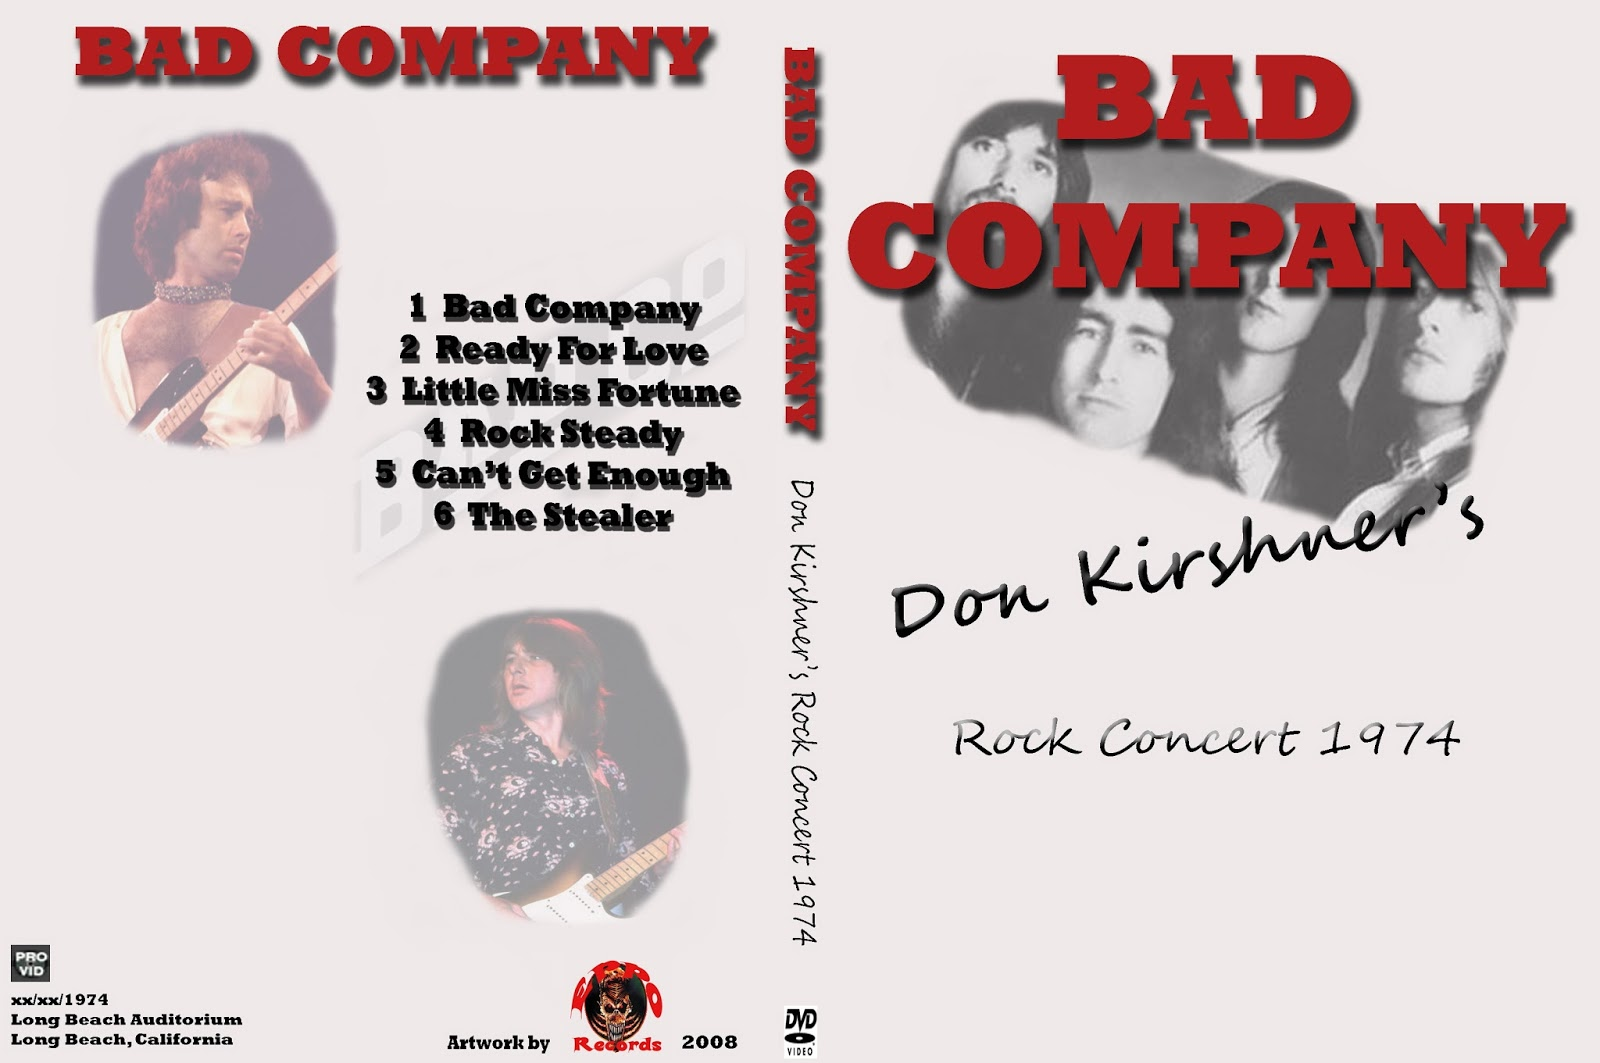 t u b e bad company 1974 10 12 long beach ca dvdfull pro shot. Black Bedroom Furniture Sets. Home Design Ideas